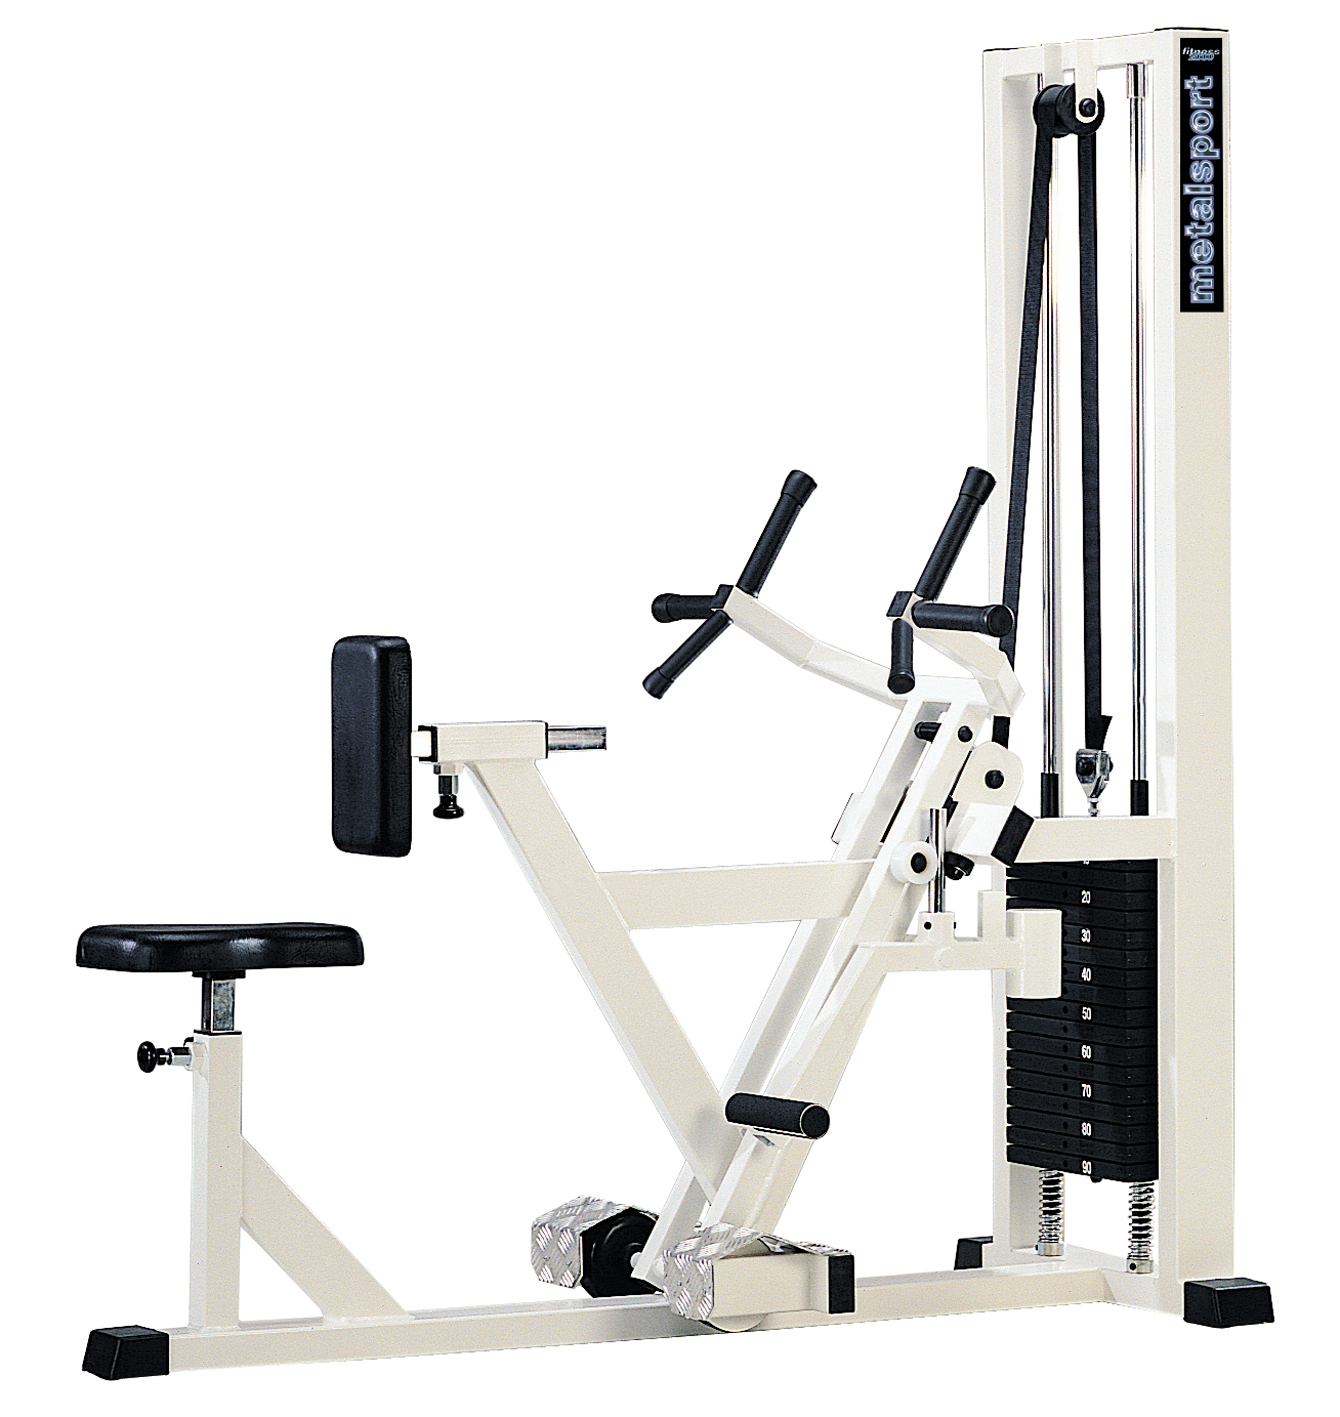 station de musculation 3220 rowing machine dorsaux 2010 metalsport. Black Bedroom Furniture Sets. Home Design Ideas